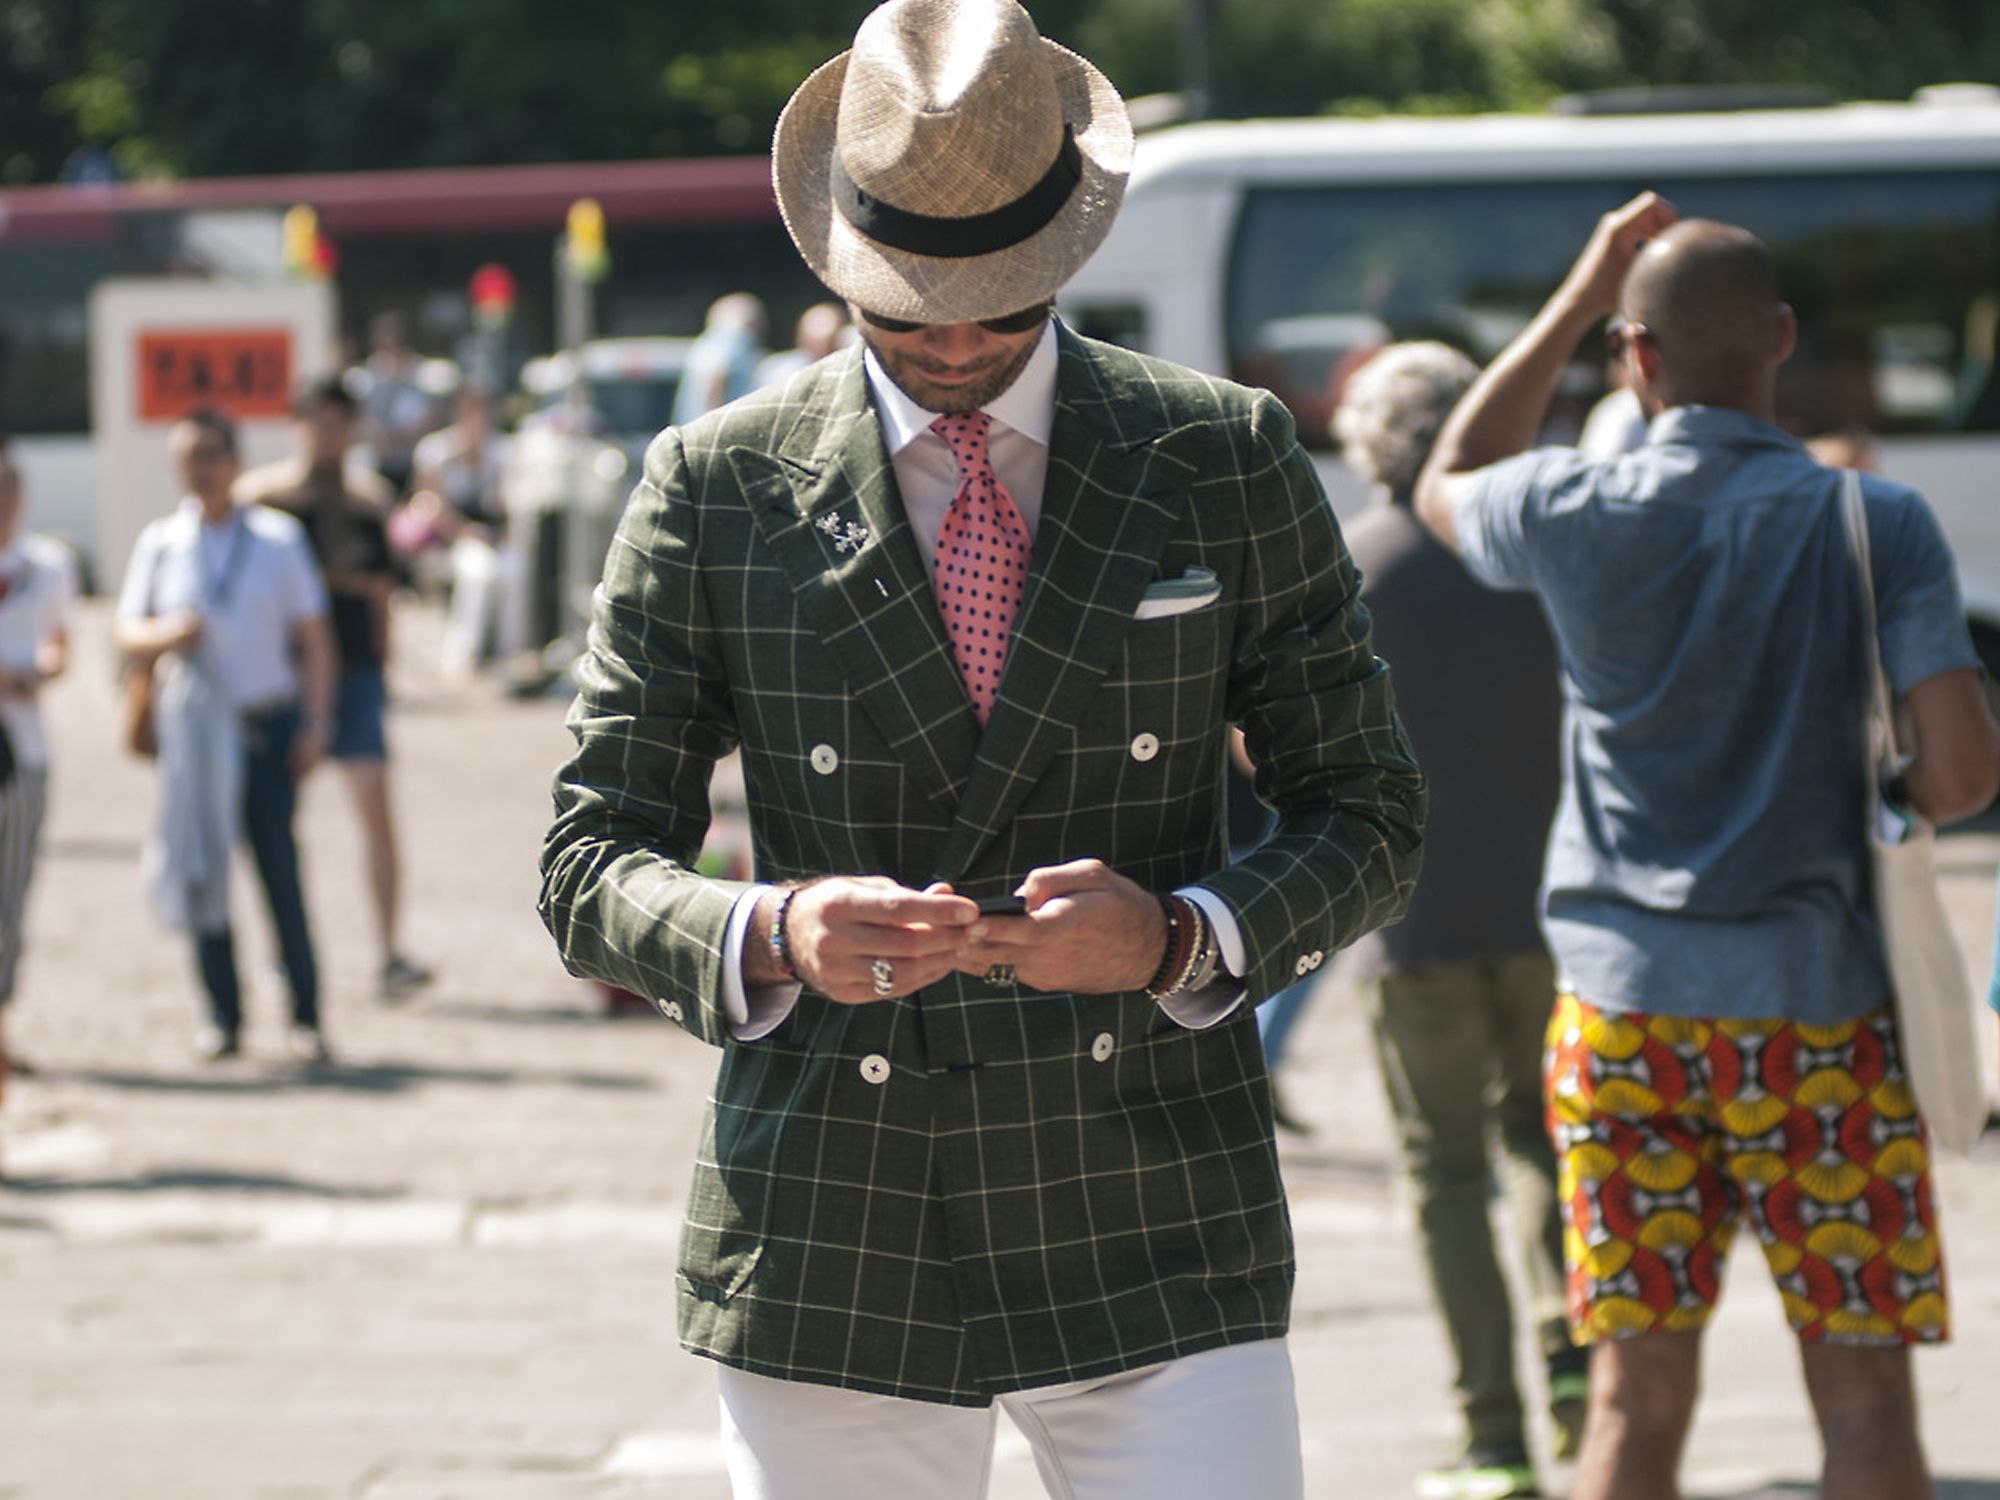 10 Of The Best Street Style Blogs